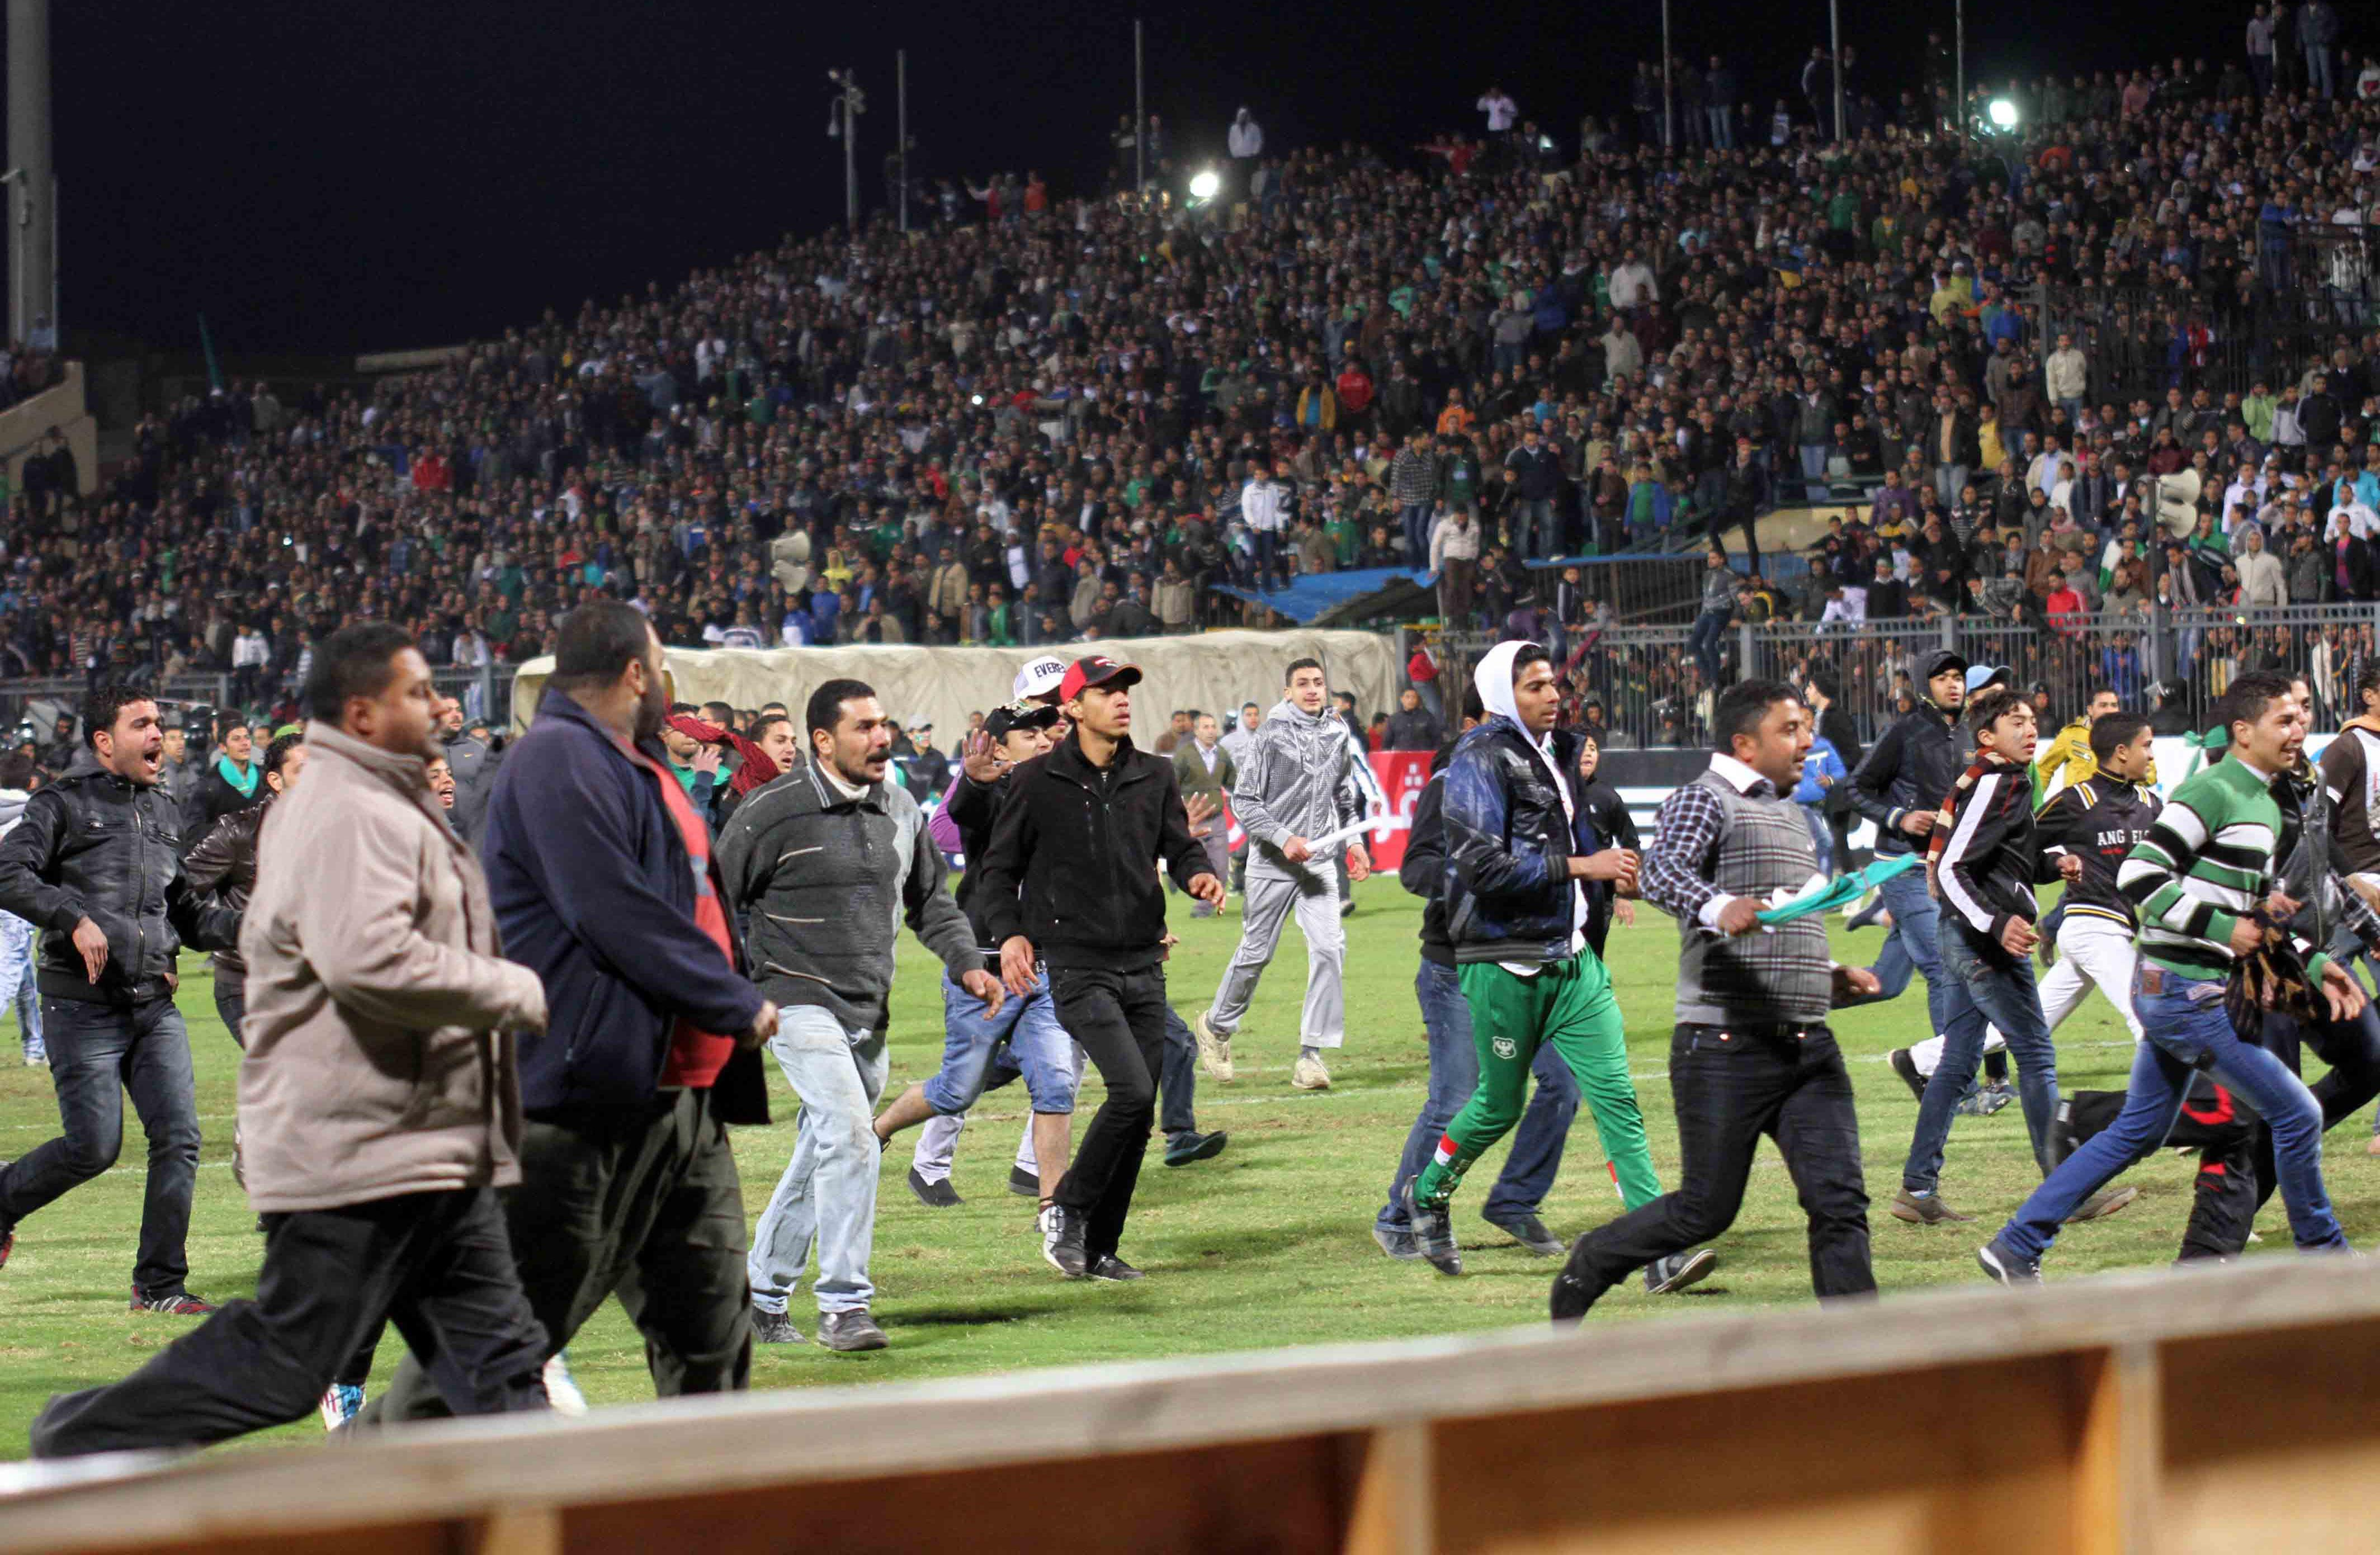 It remains the worst disaster in Egyptian football history